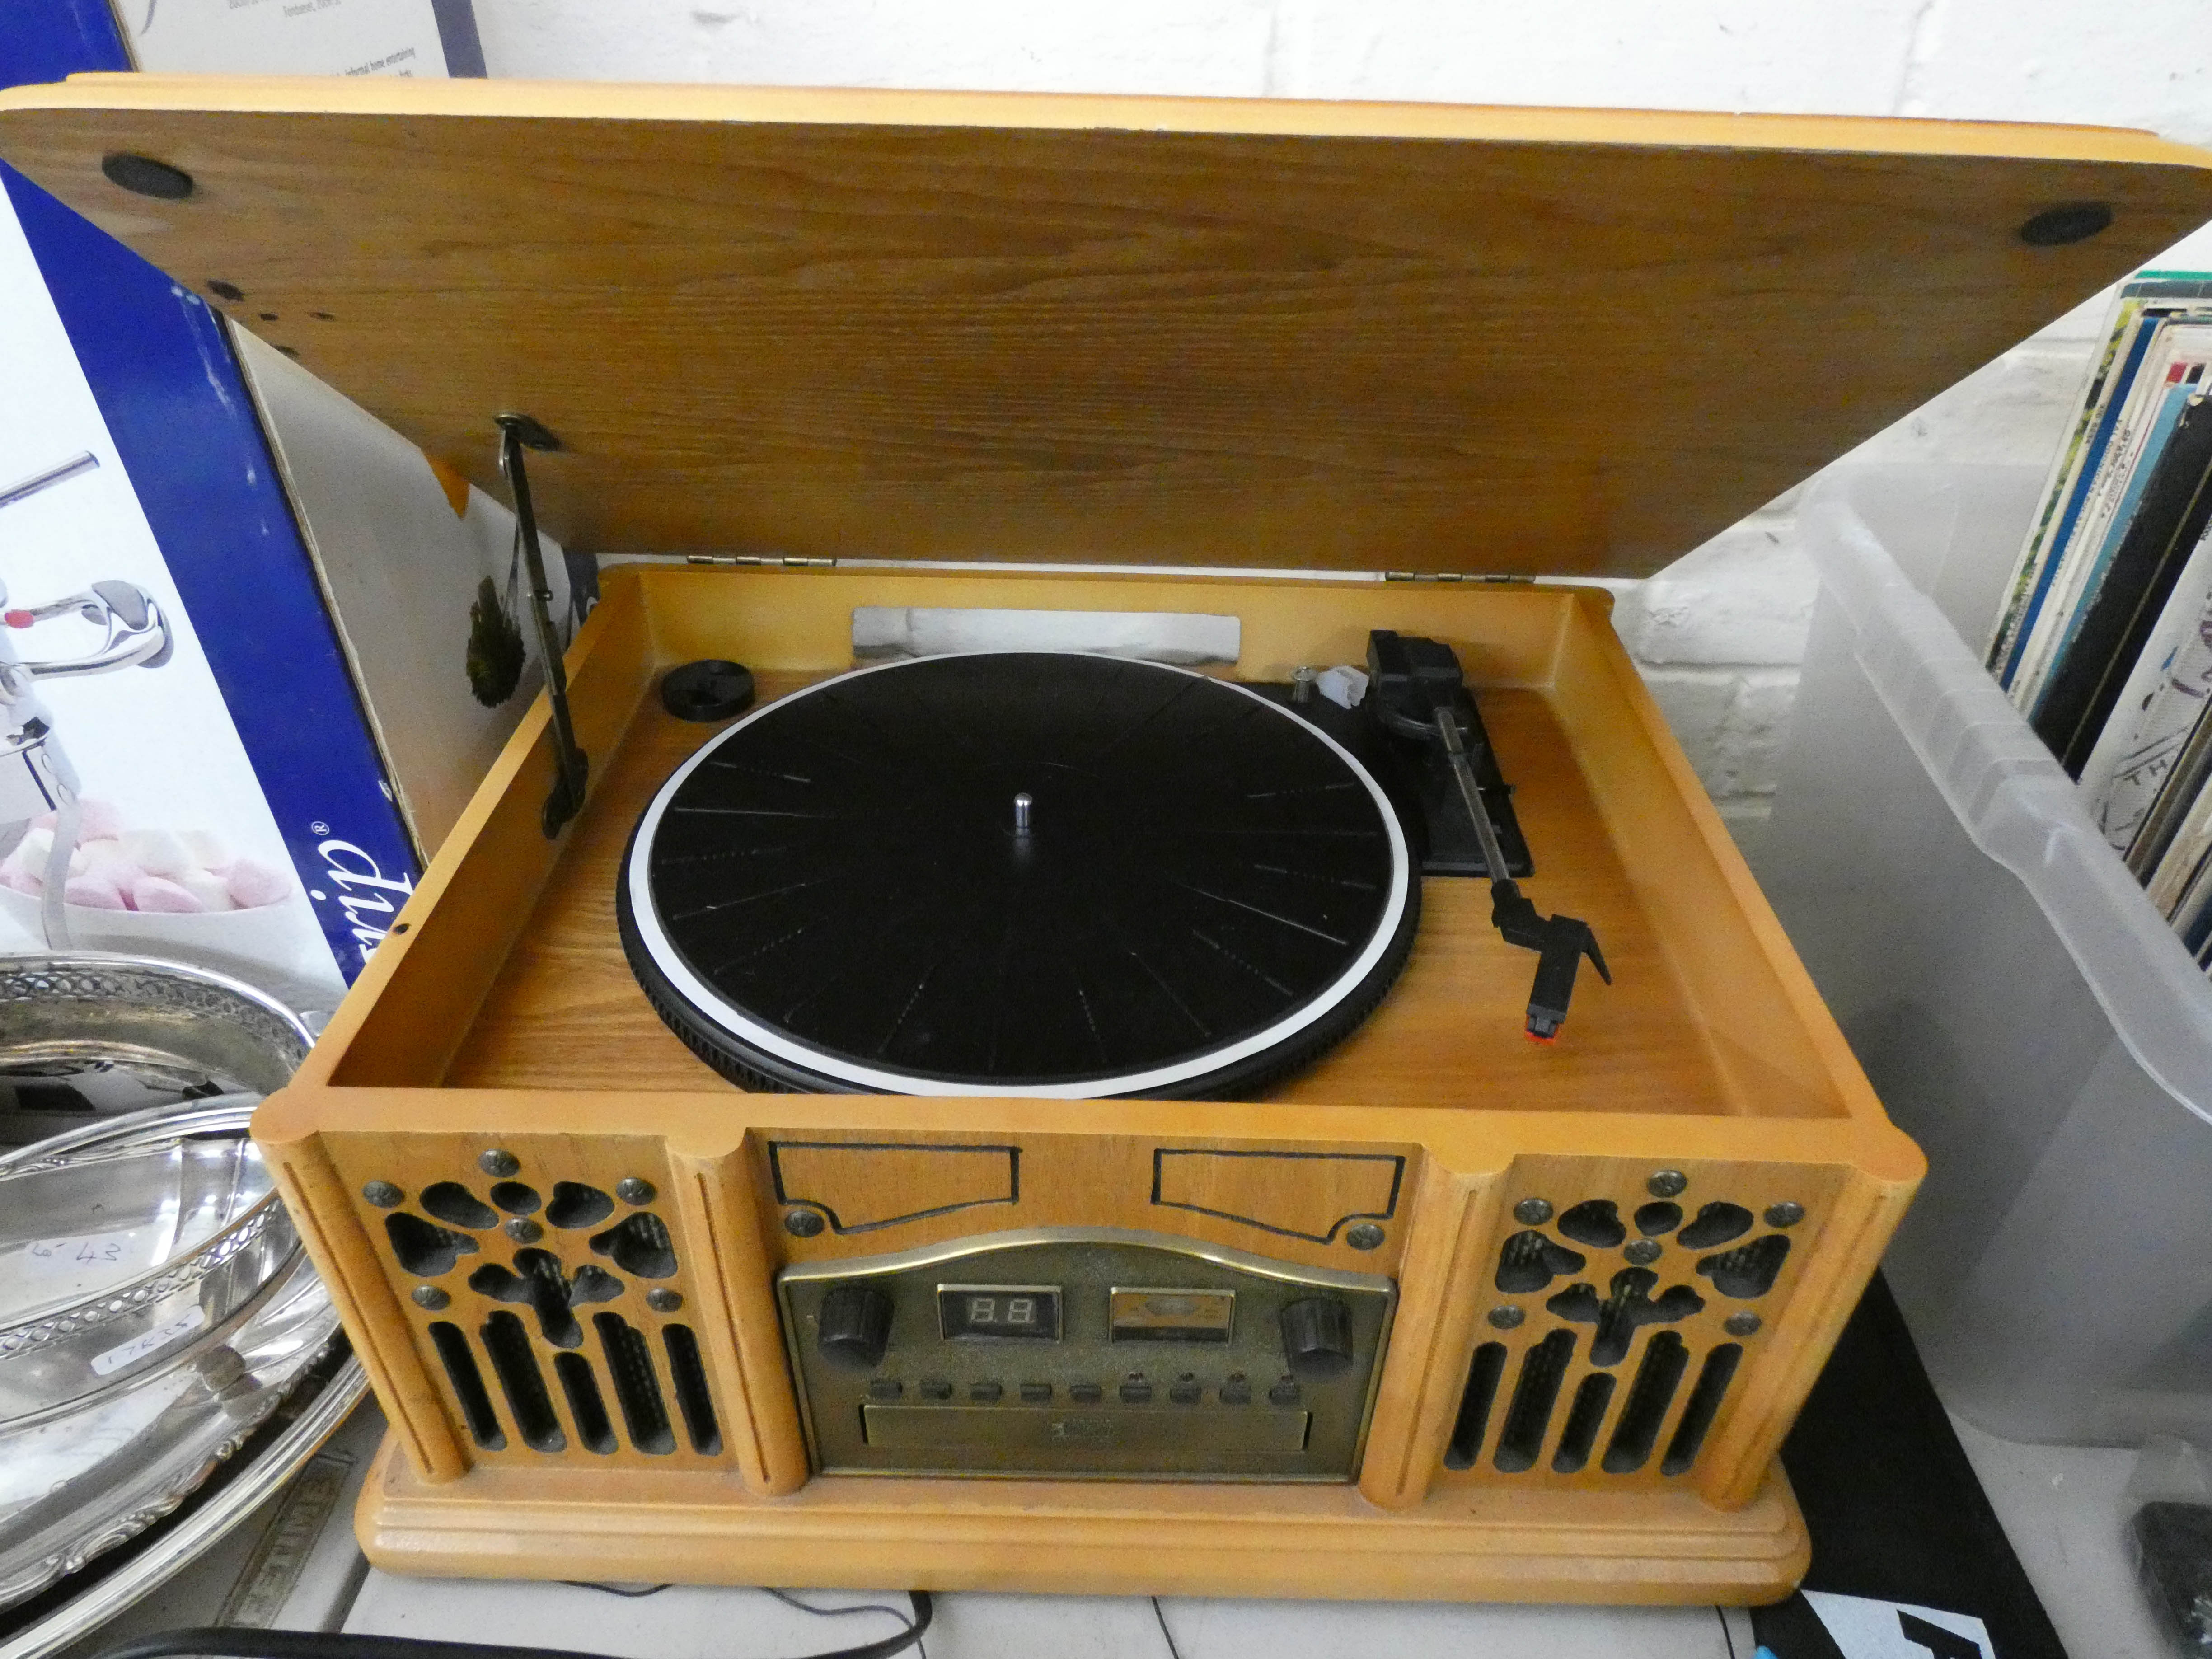 Lot 44 - A CD radio player in an old style wooden case